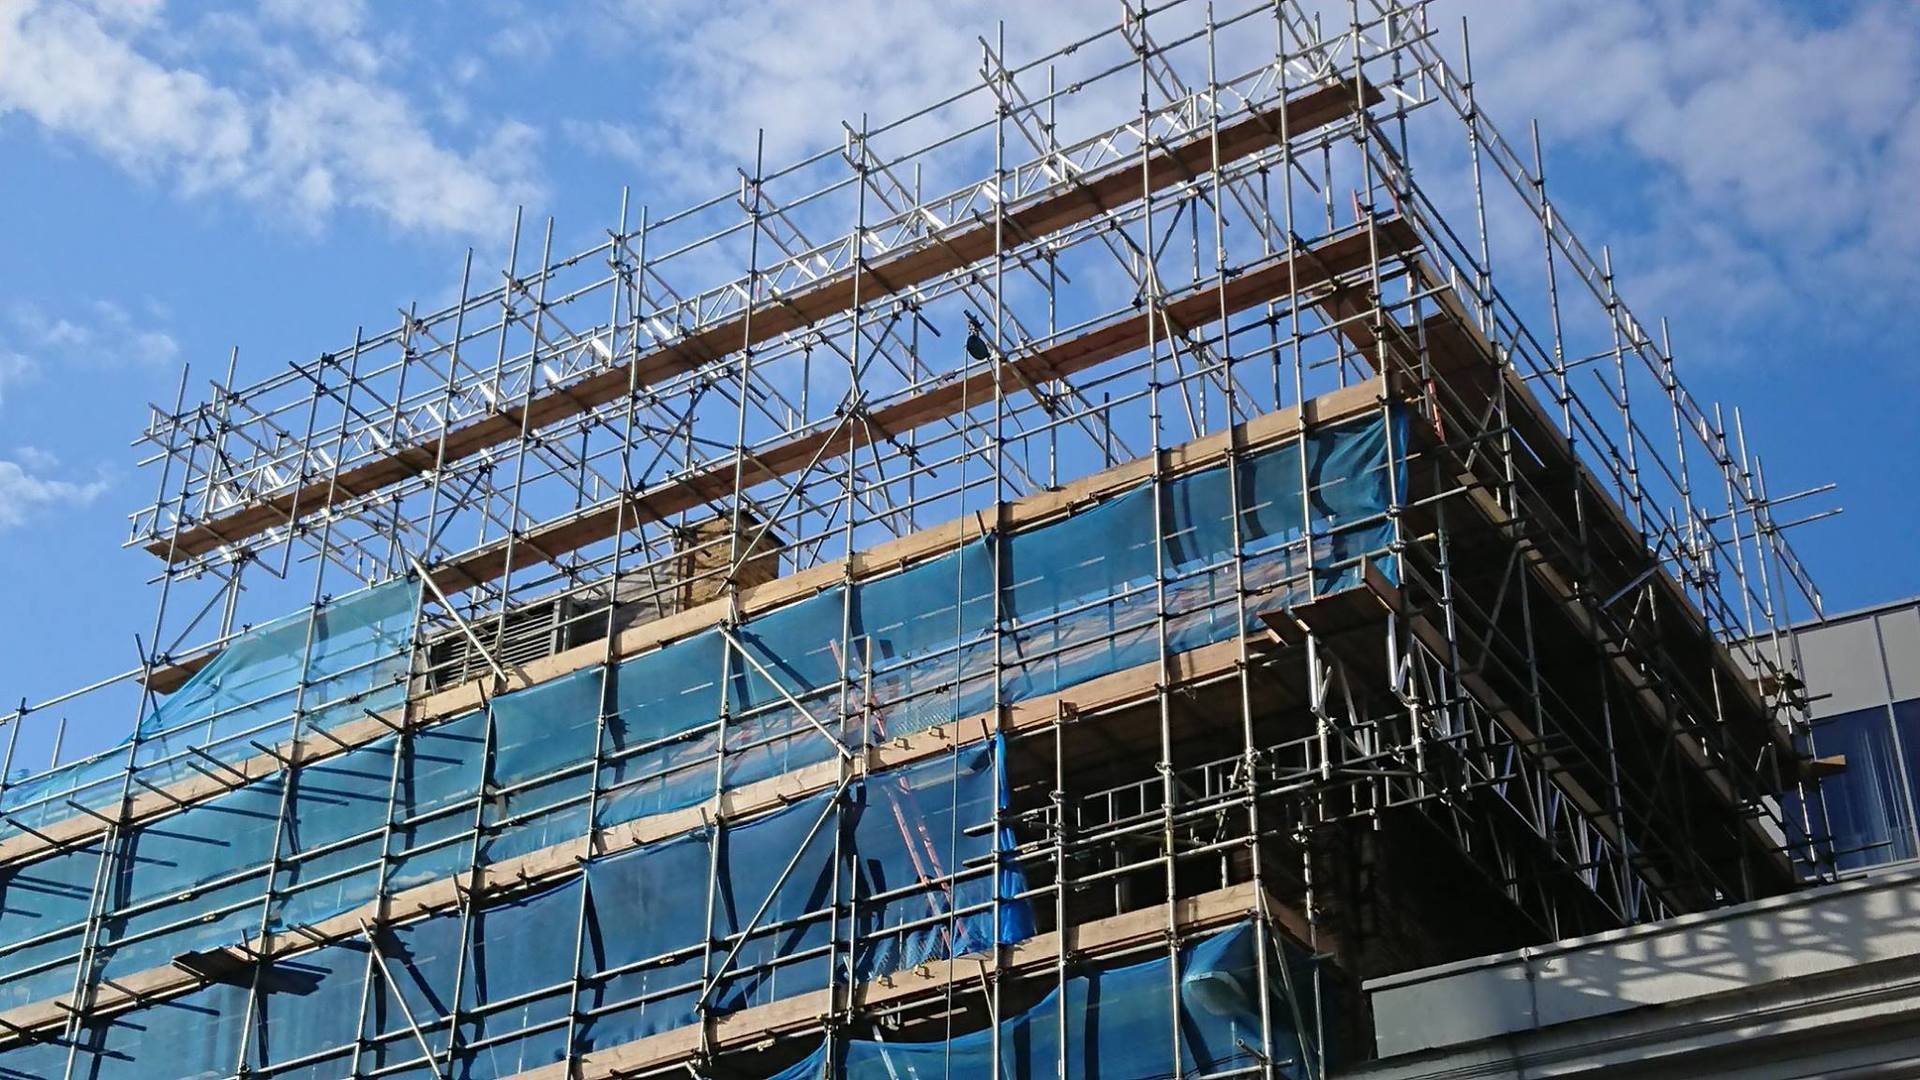 scaffolding with blue netting